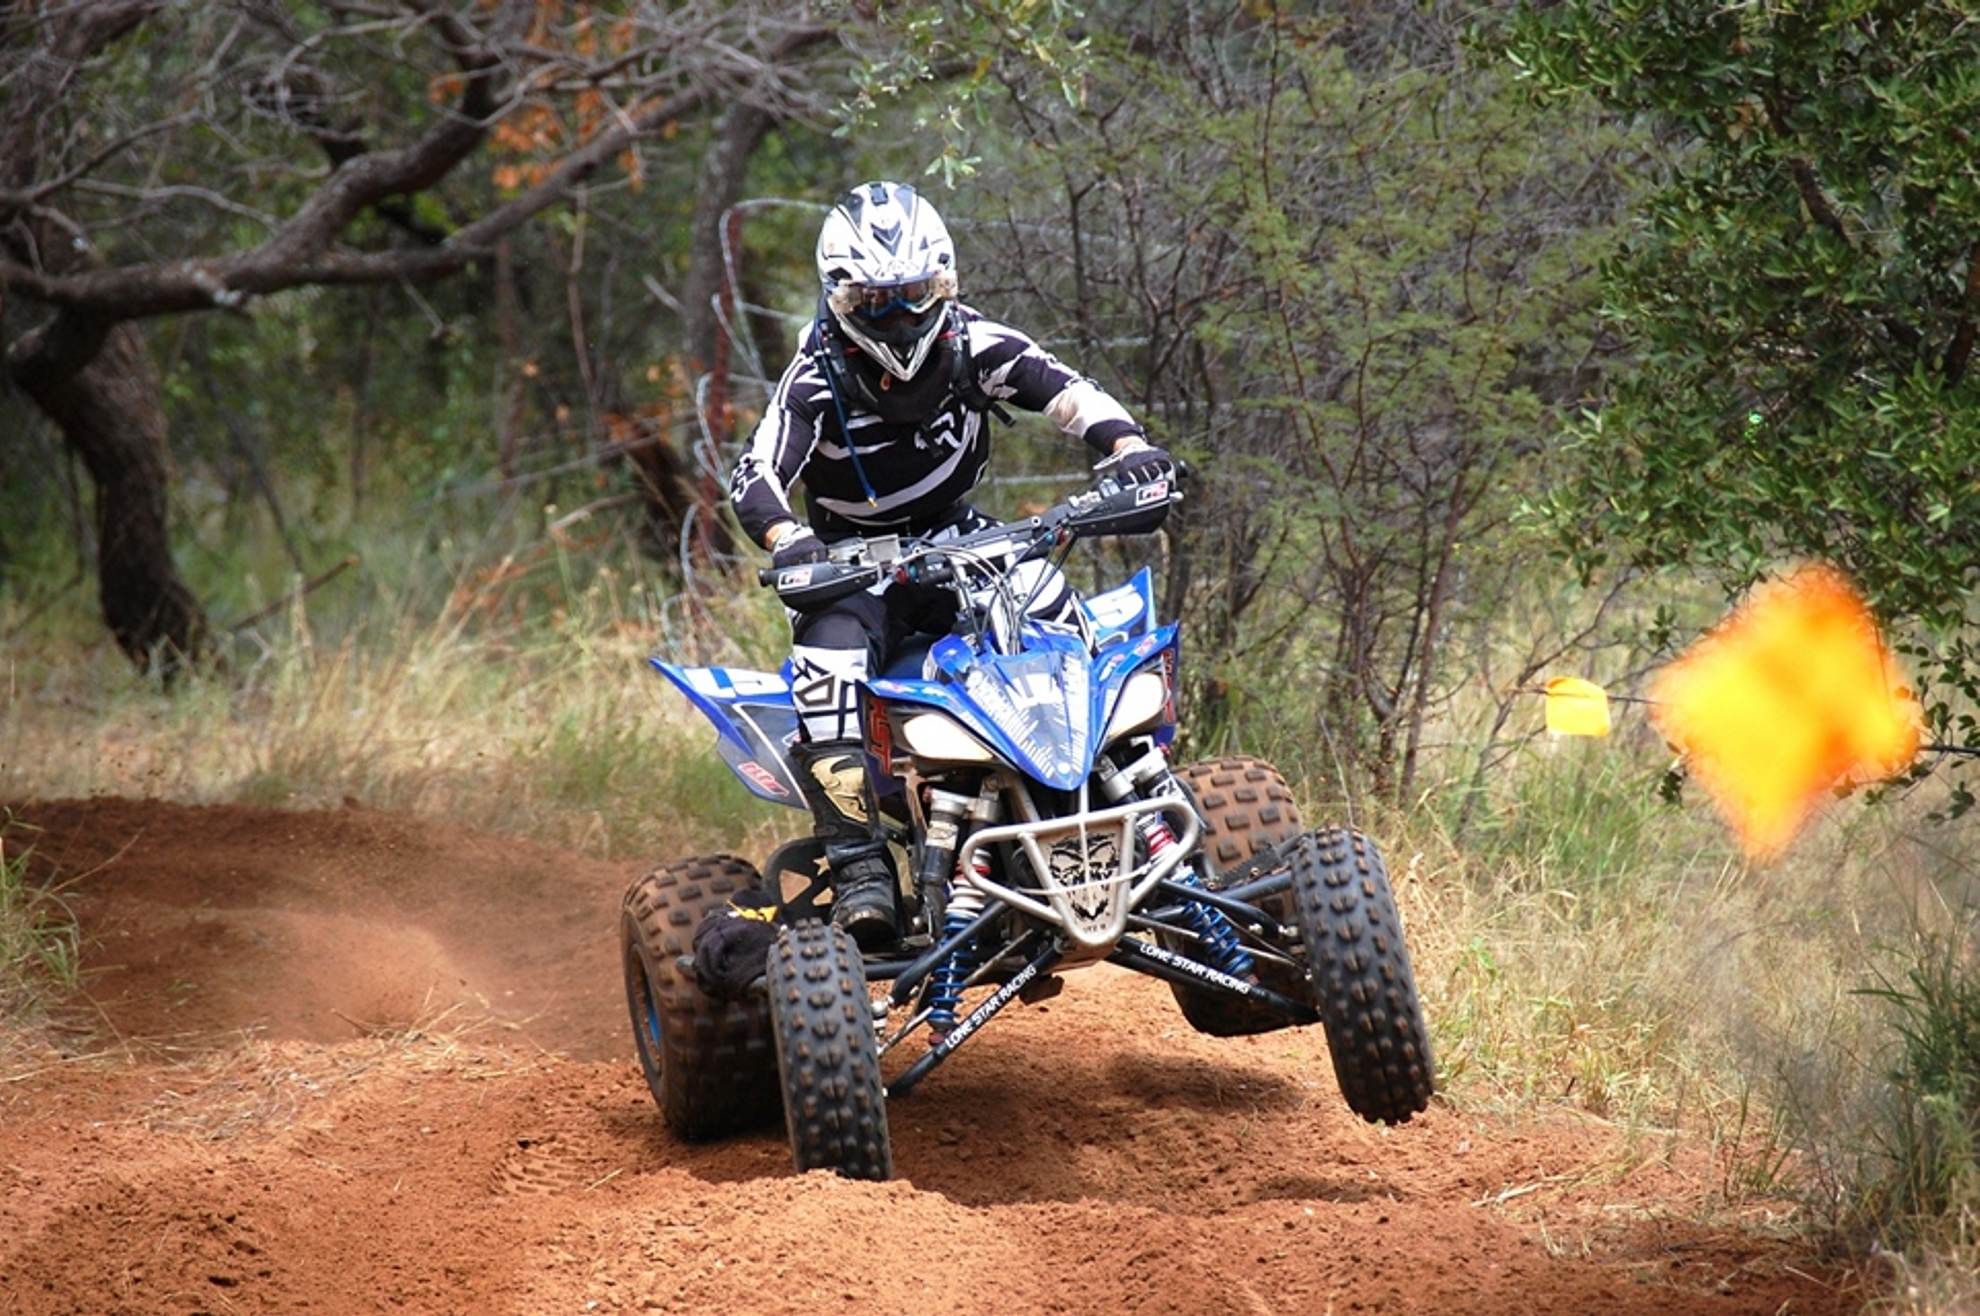 South Africa Motorcycle Racing